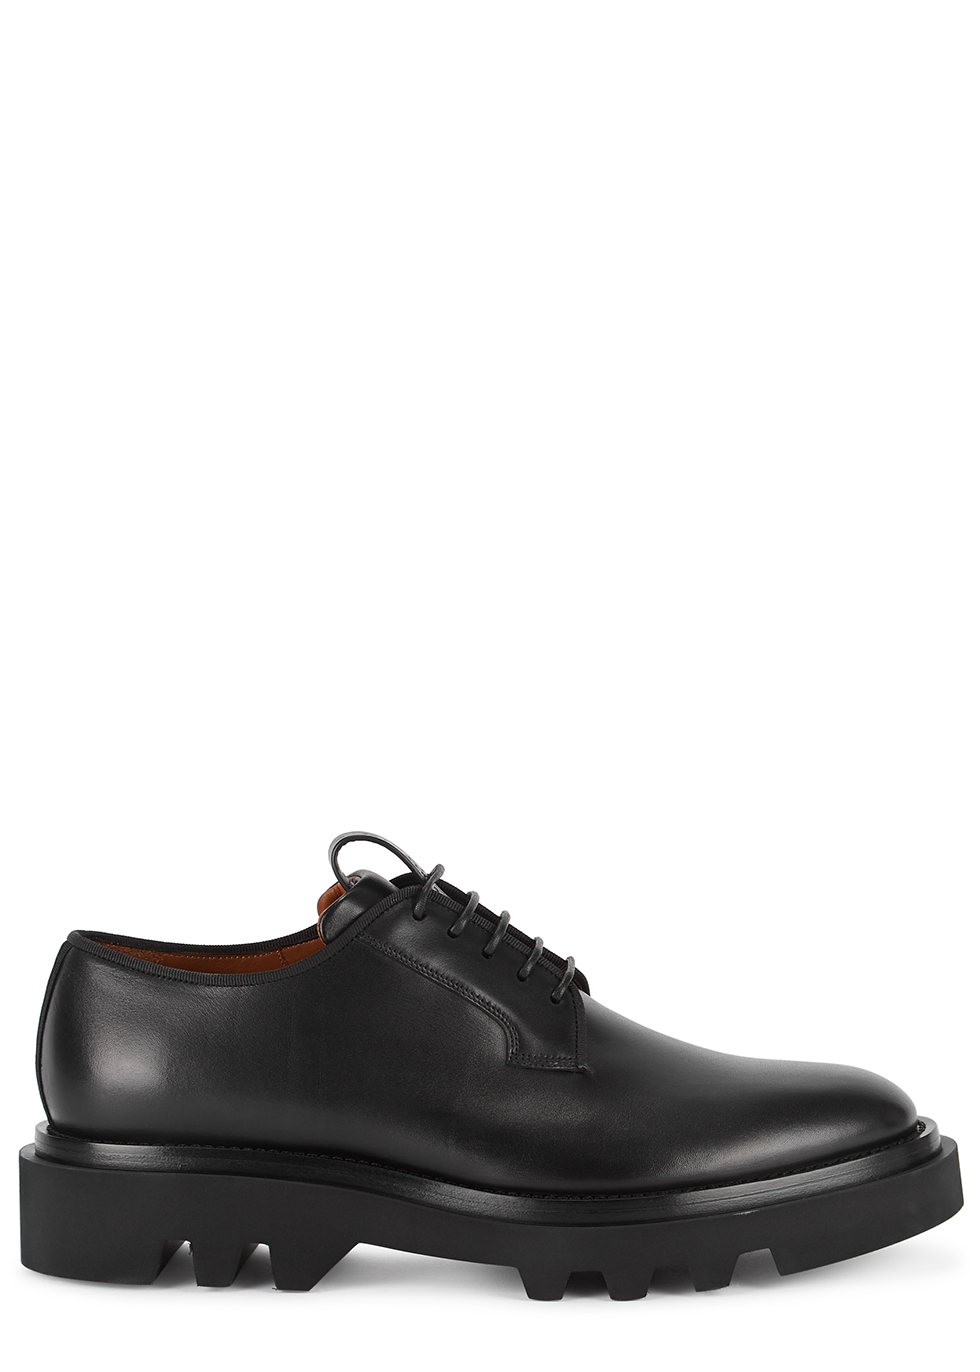 Black glossed leather Derby shoes